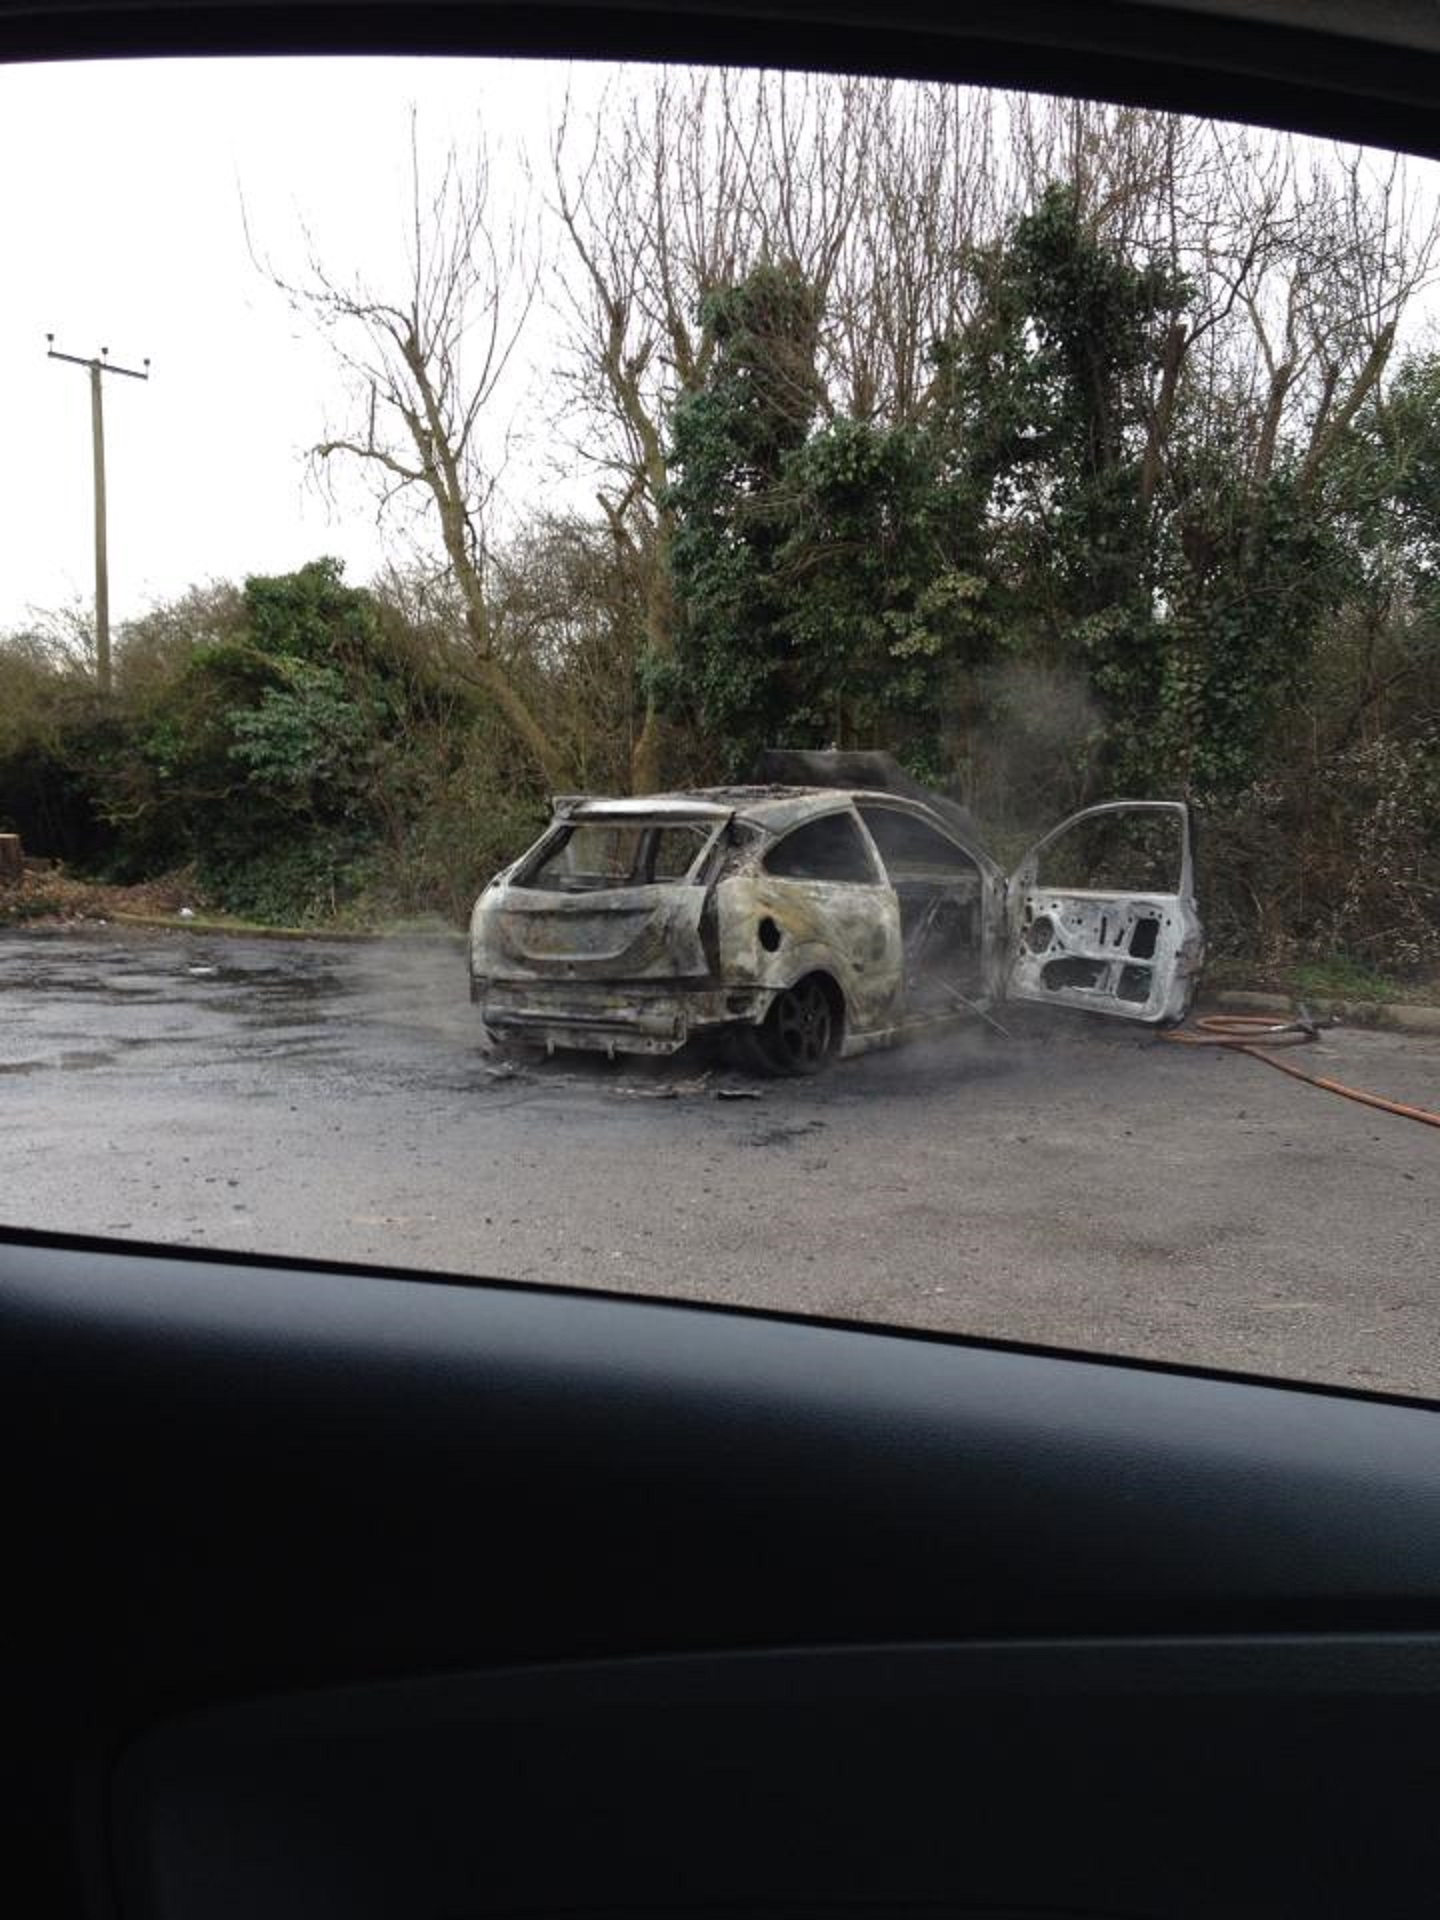 The burned out car. Submit